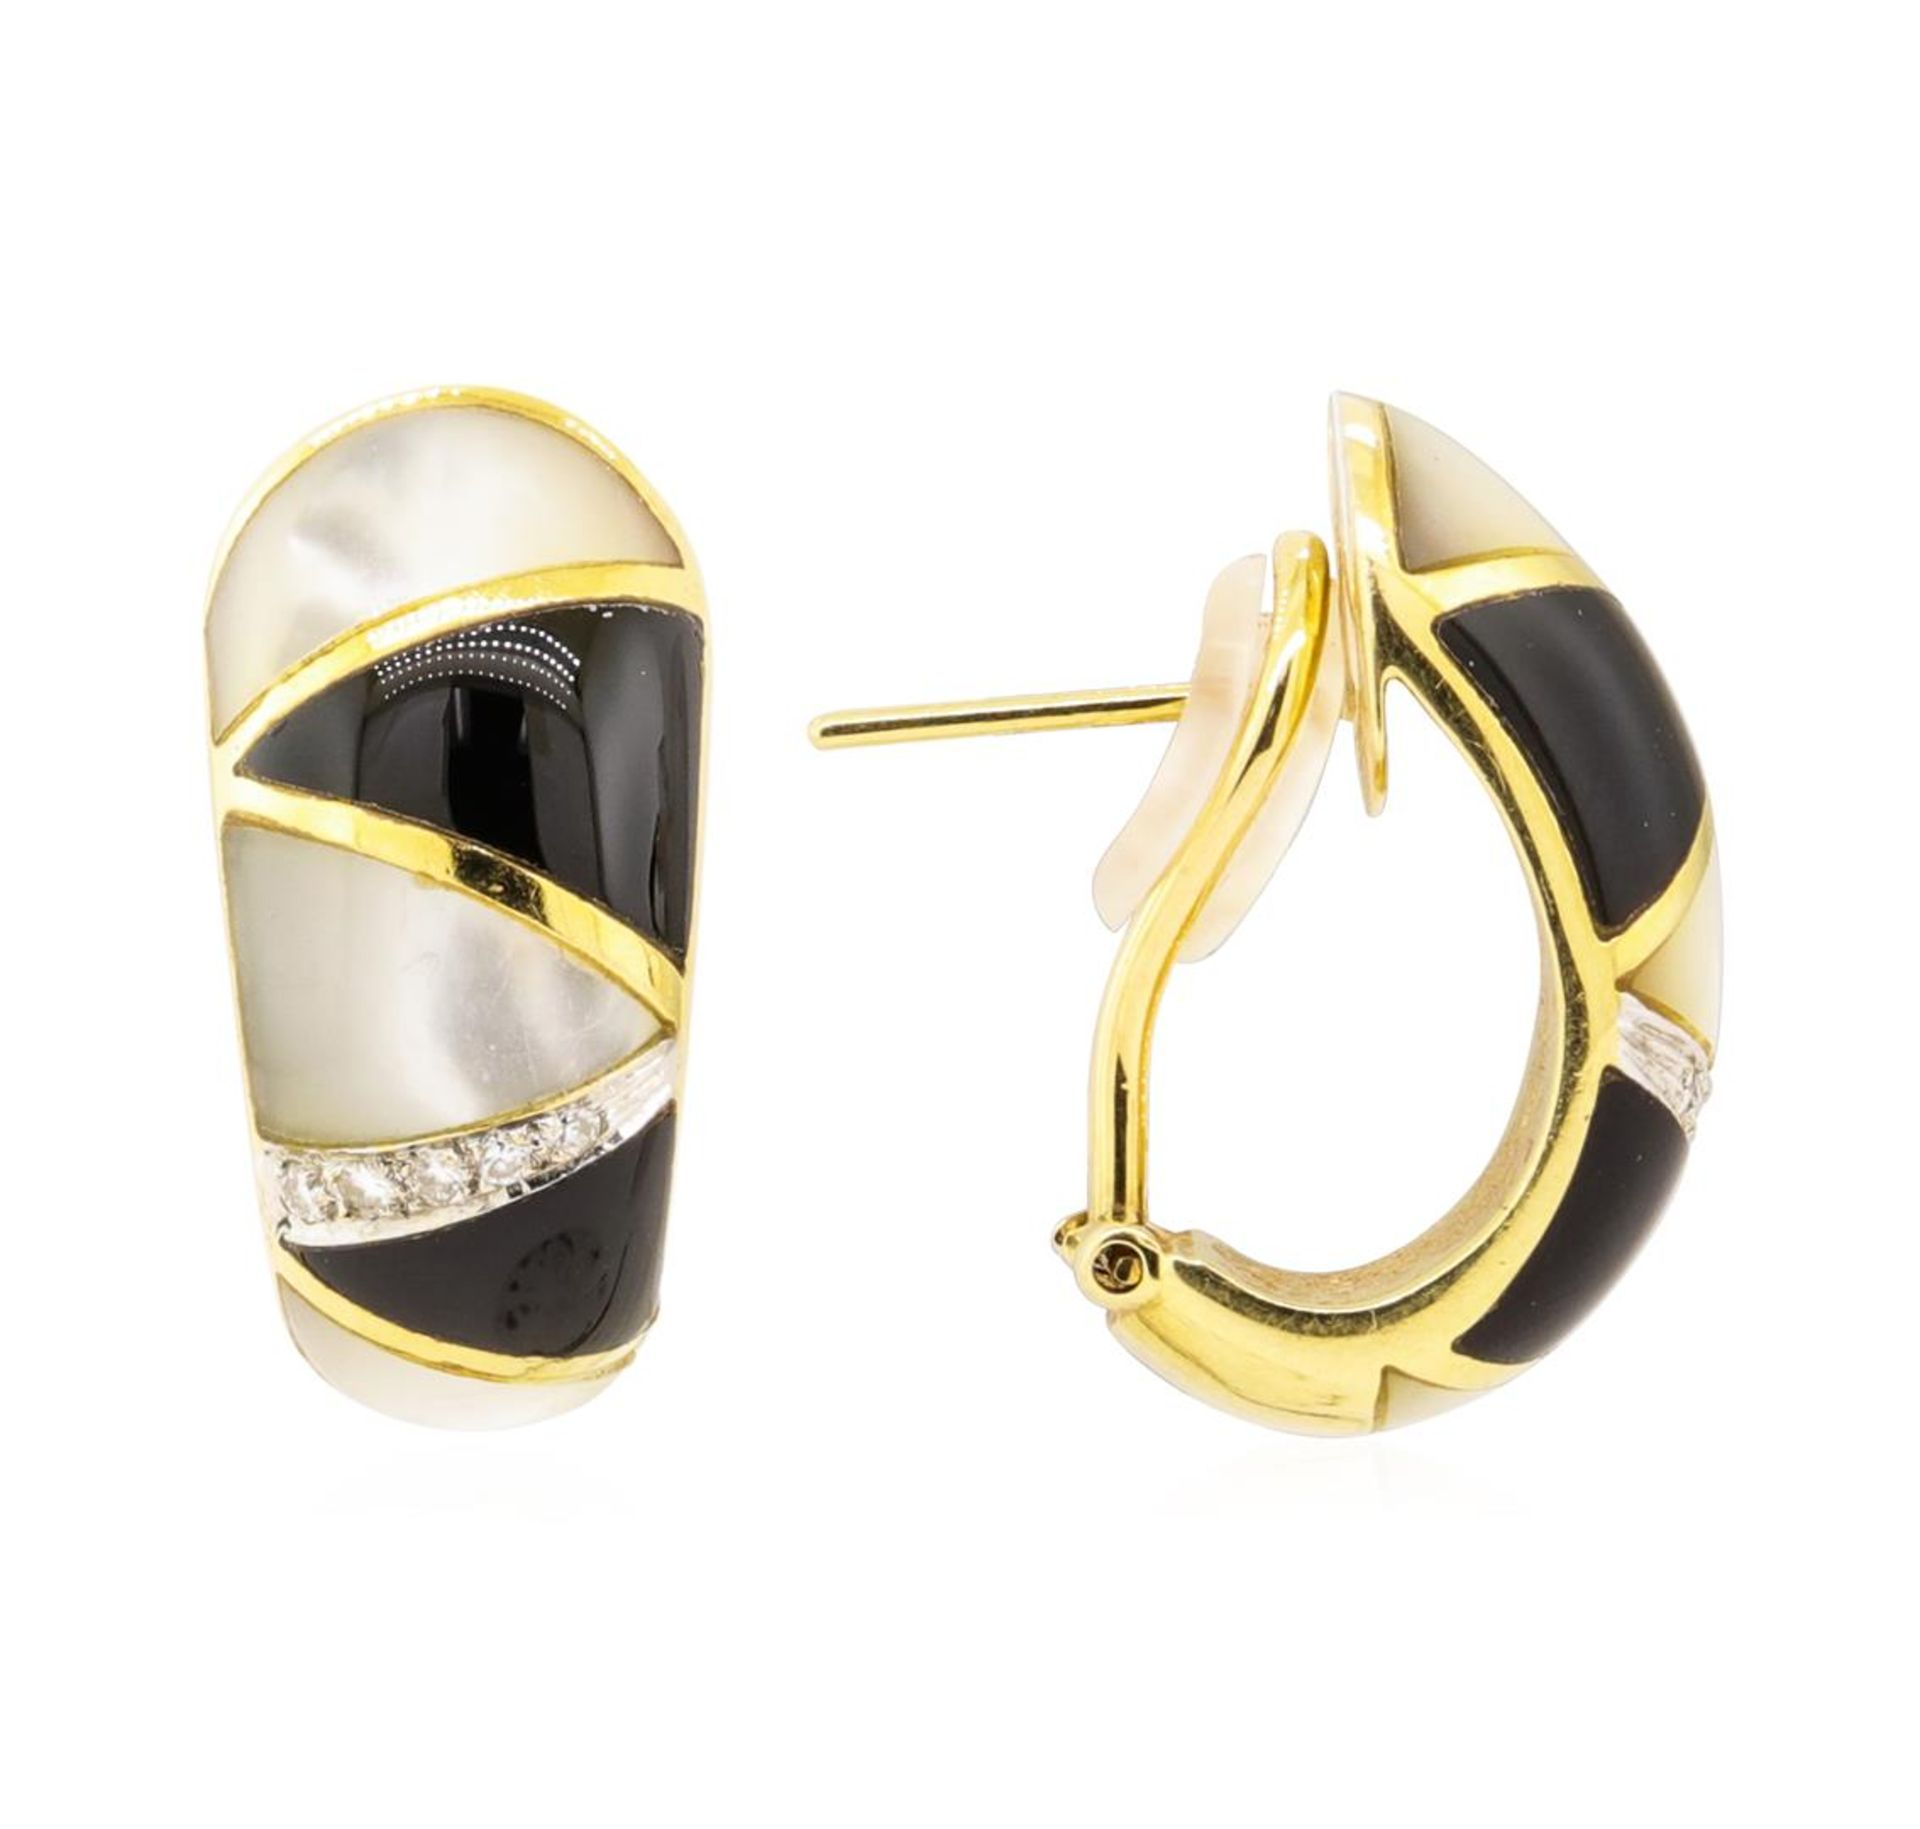 0.10 ctw Diamond, Onyx, and Mother of Pearl Earrings - 18KT Yellow Gold - Image 2 of 3